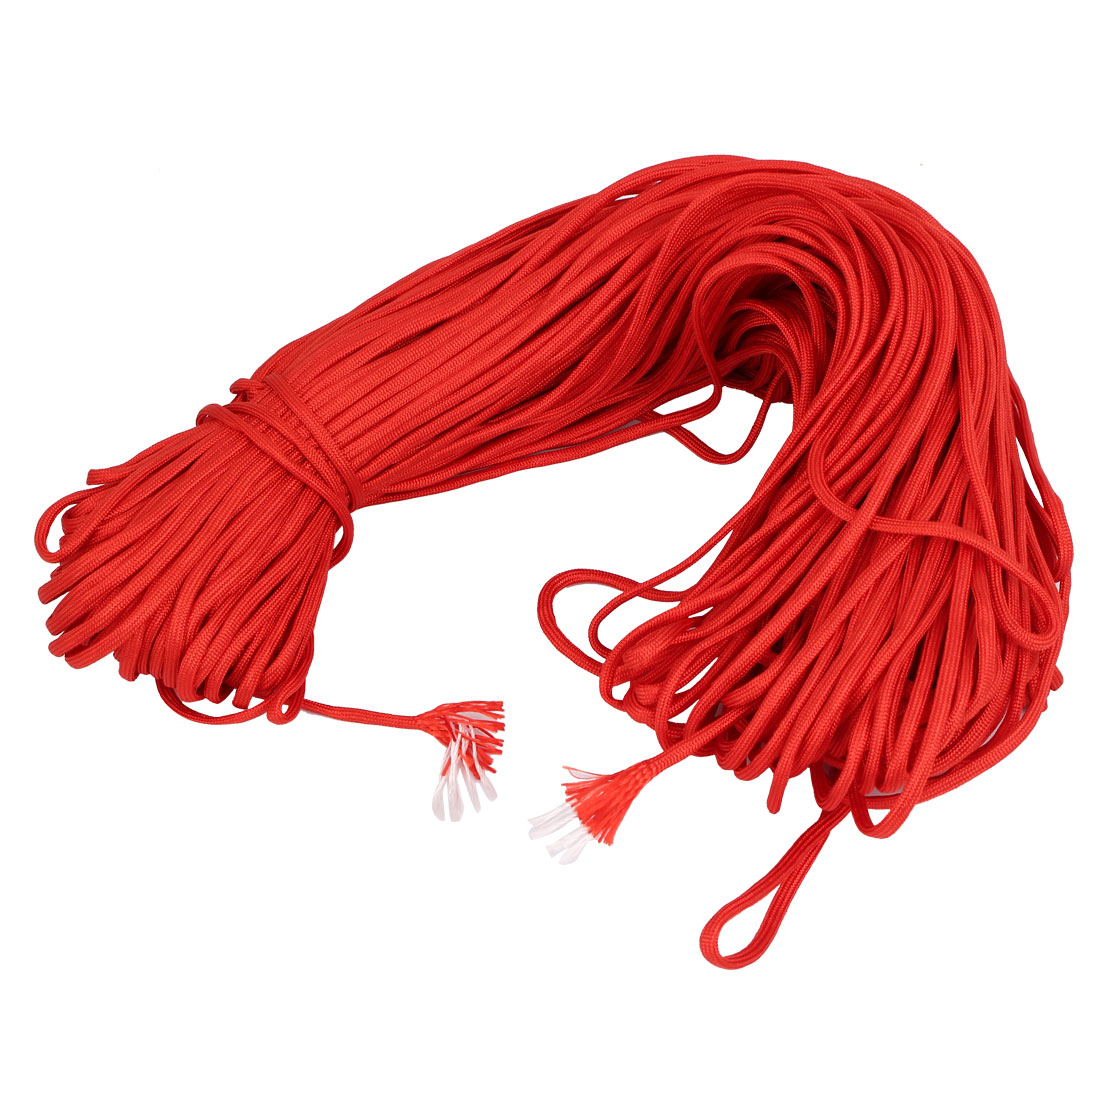 100M Length Outdoor Hiking Umbrella Tied Tents Survival Cord Safety Rope Red